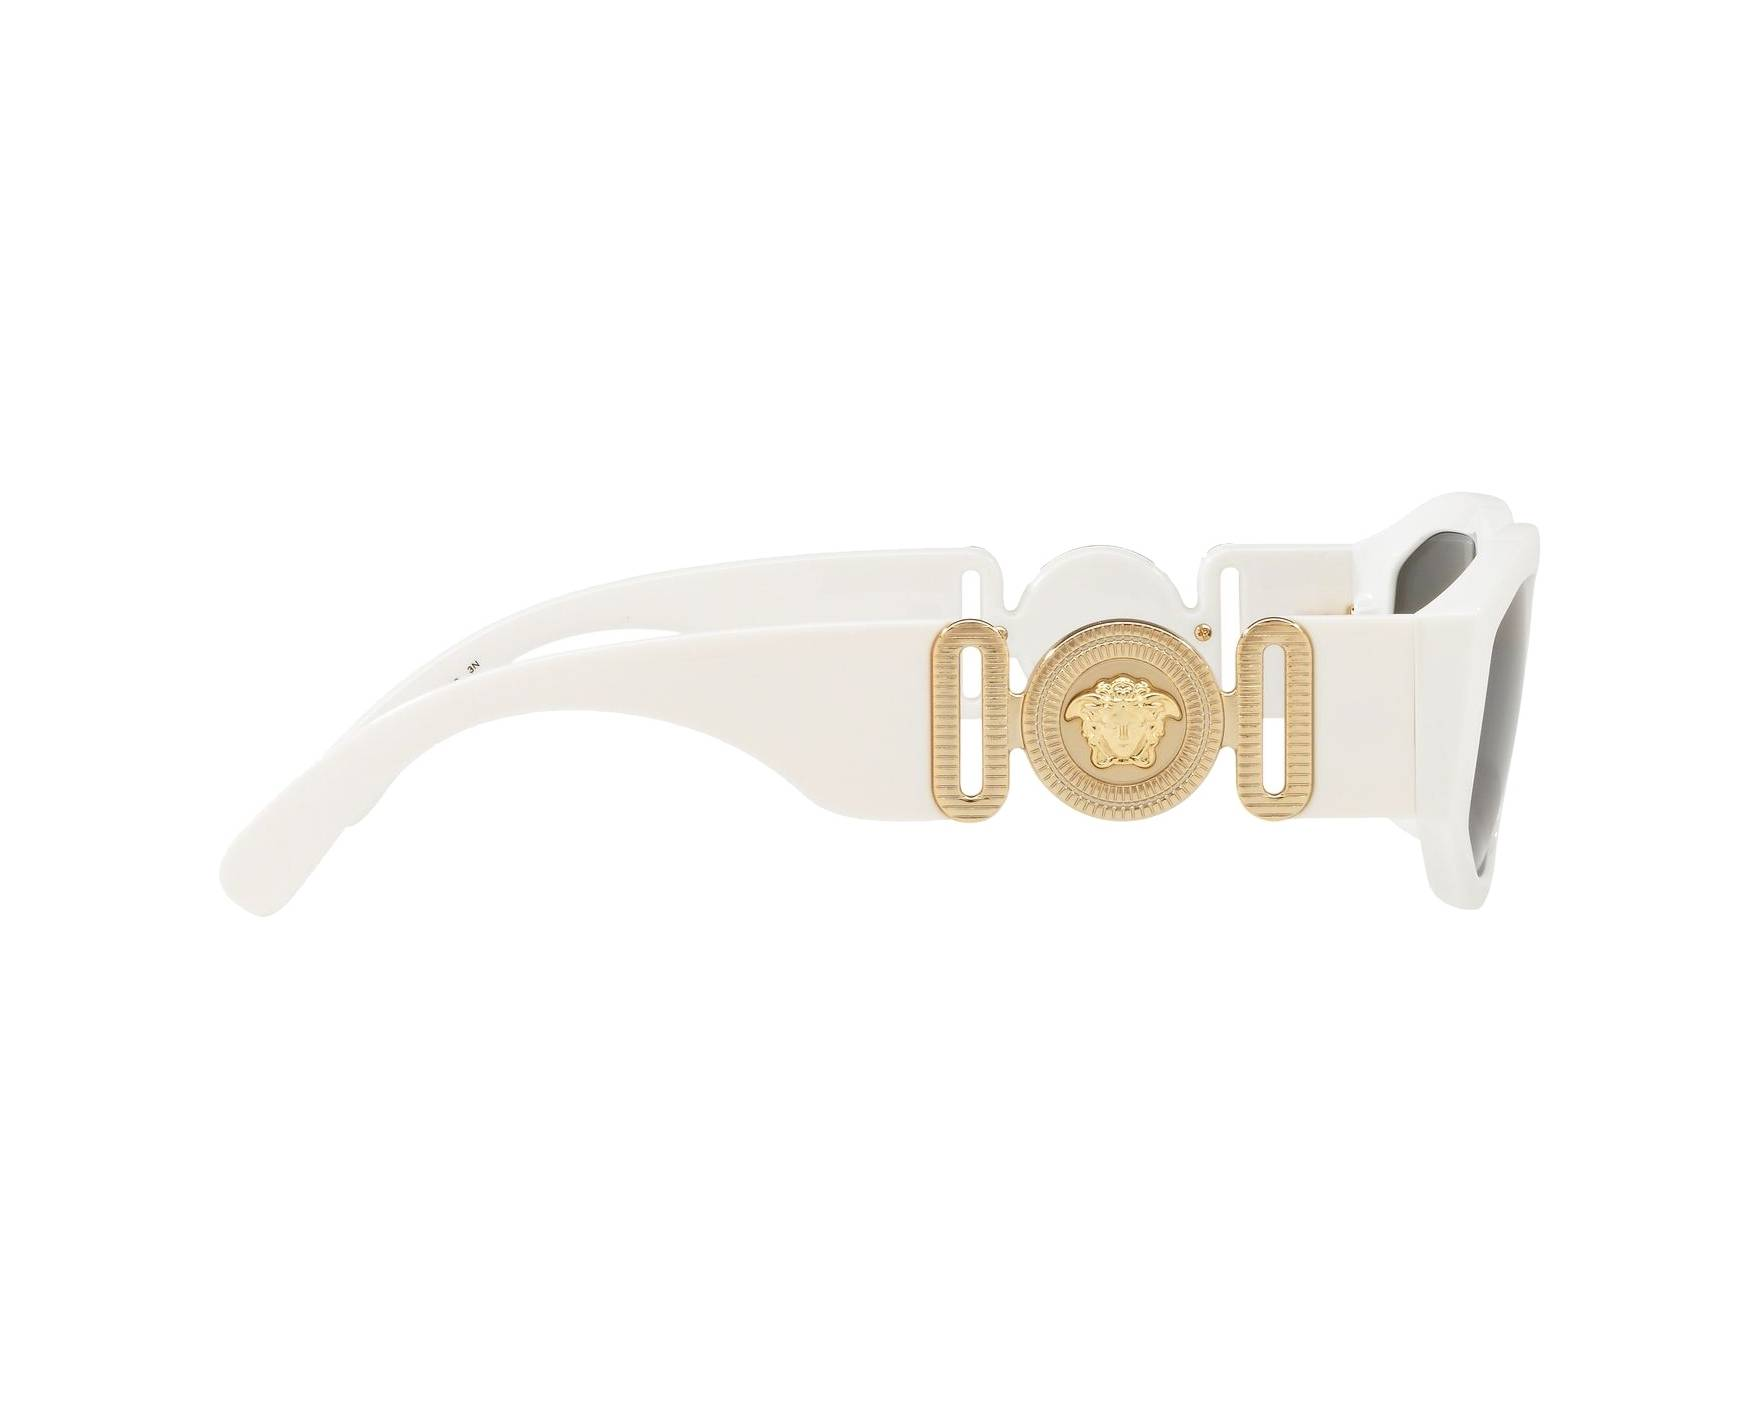 2a9ac466115b Sunglasses Versace VE-4361 401-87 53-18 White 360 degree view 10